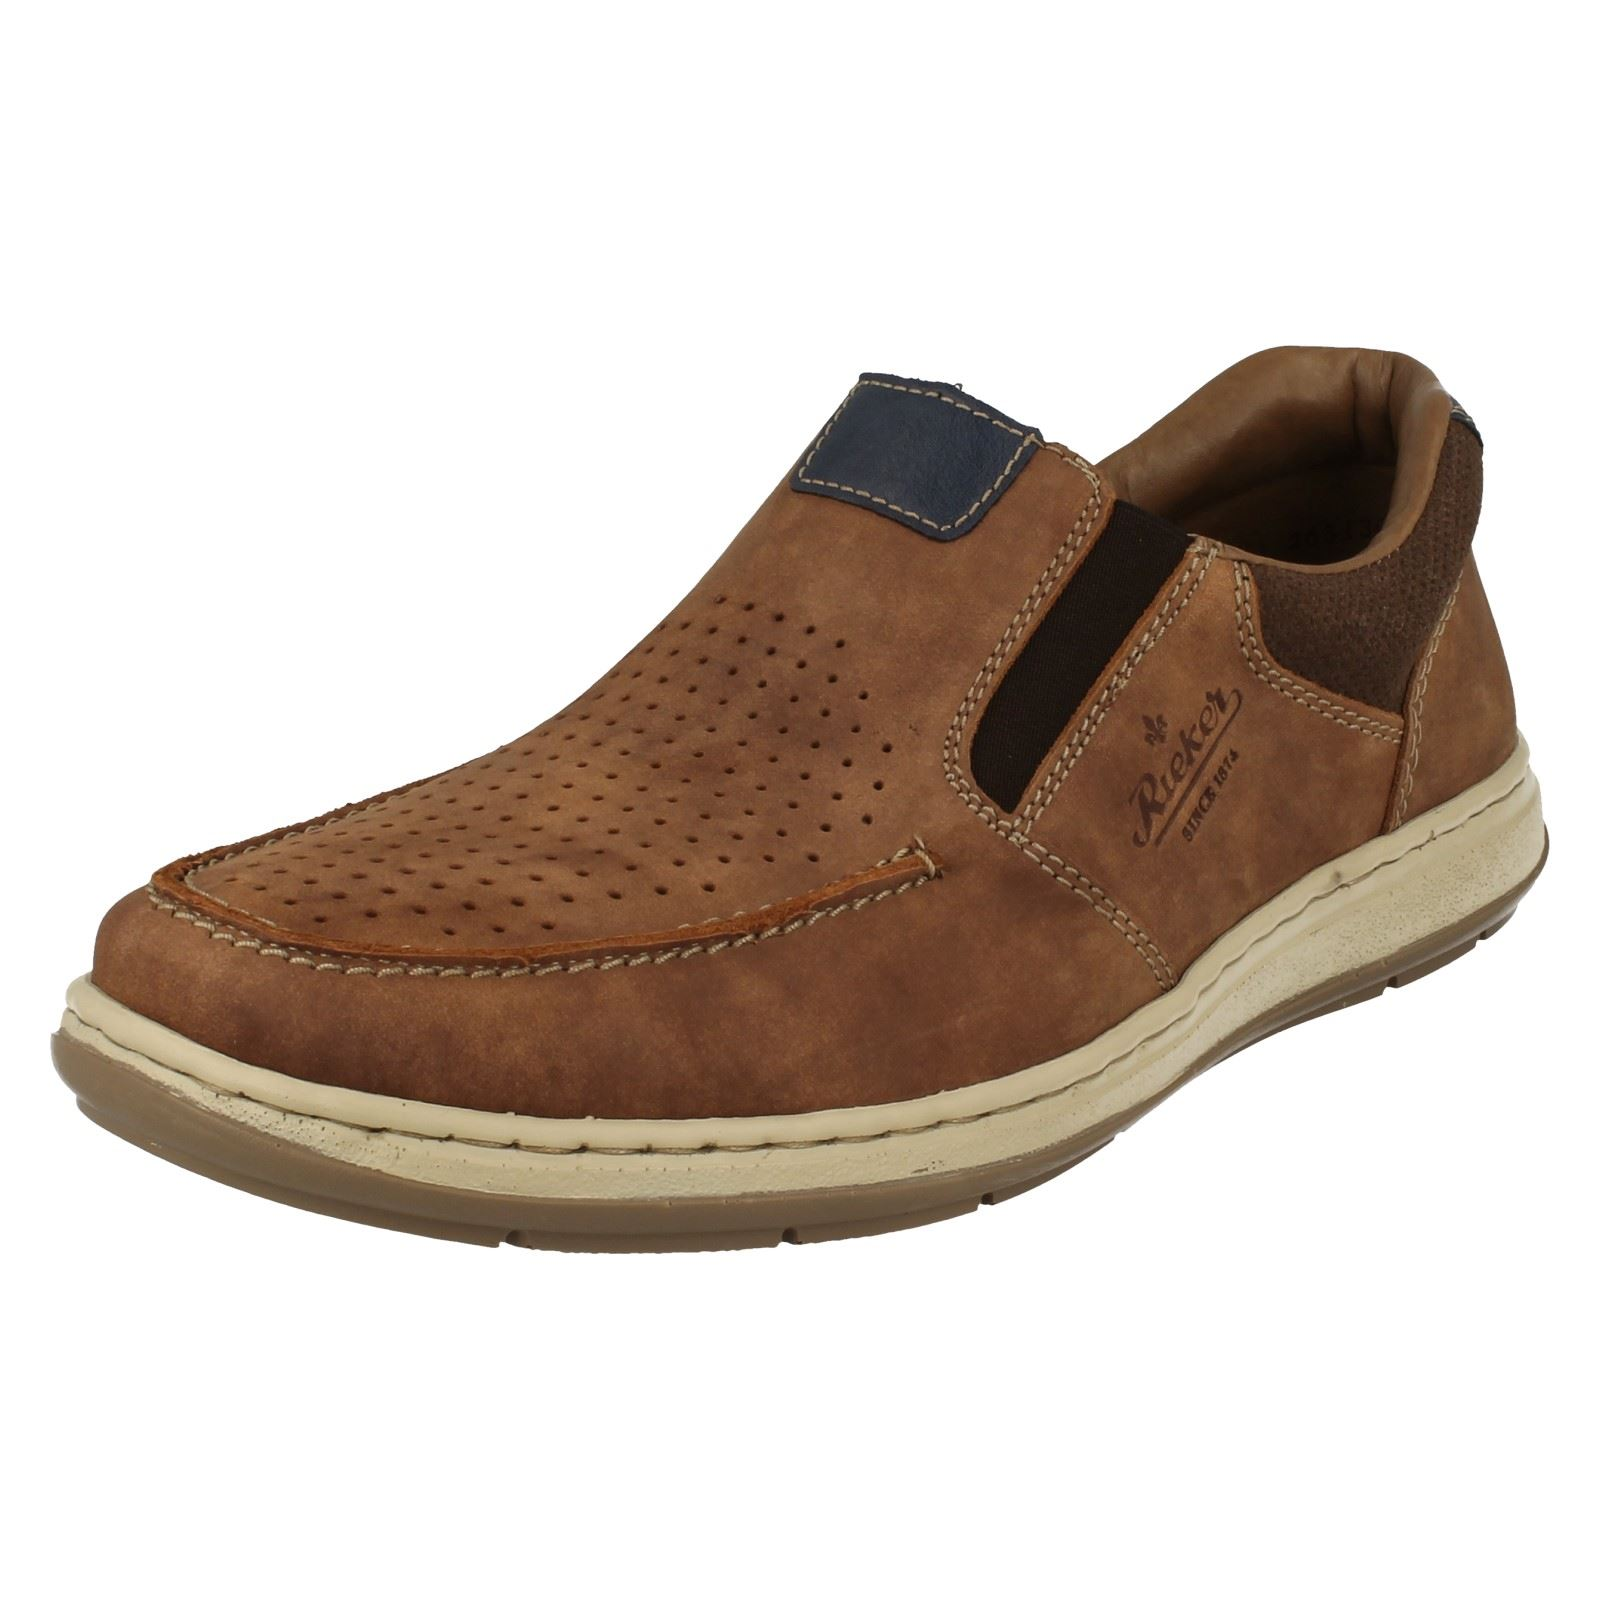 Mens Rieker Moccasin Style Slip On Shoes 17367.